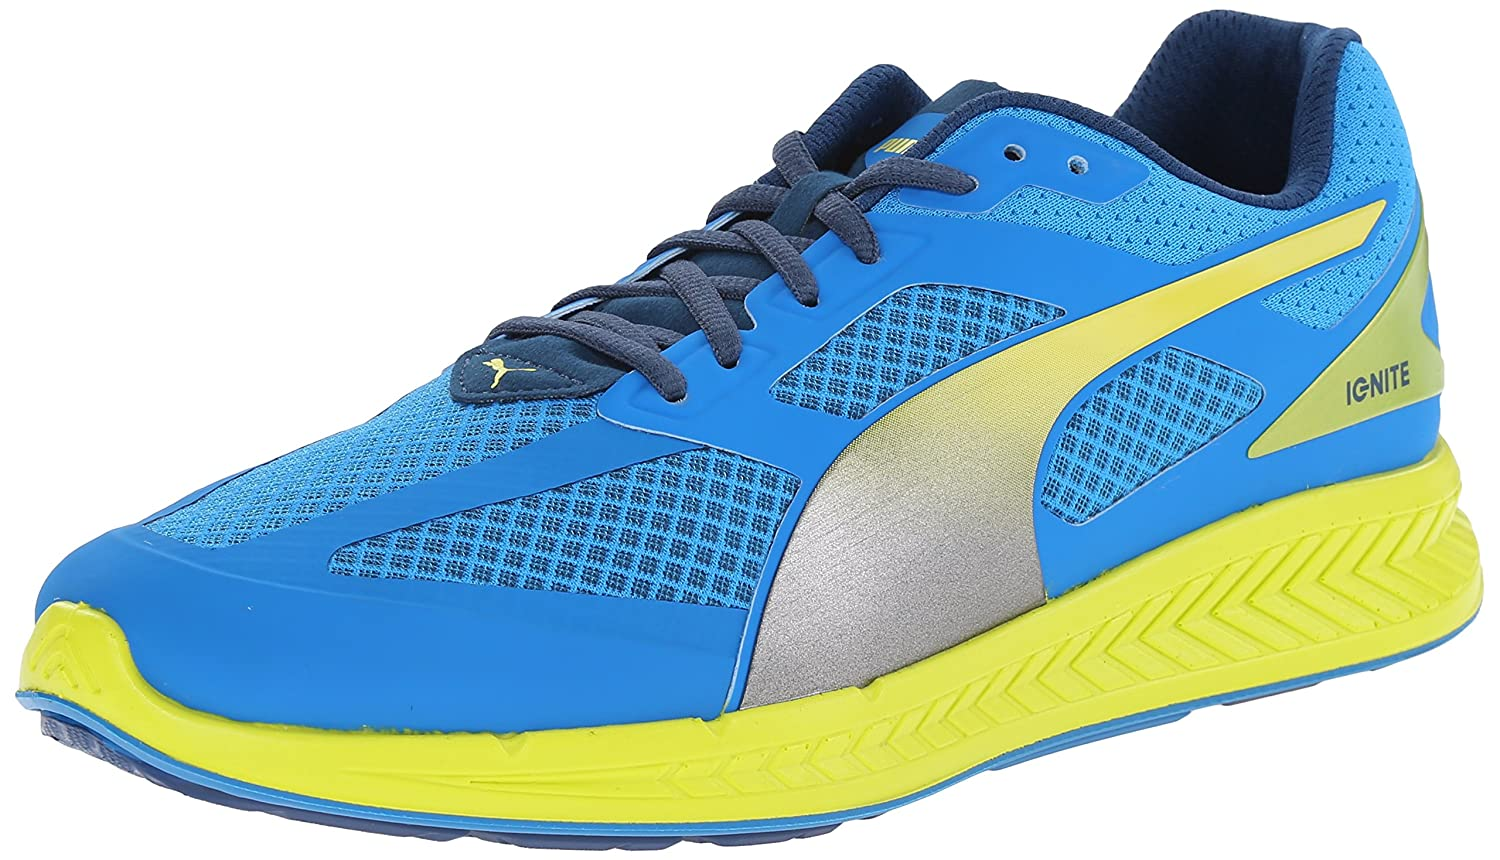 PUMA Men's Ignite NM Running Shoe B00QJ0VLL2 12 W US|Cloisonnee/Poseidon/Sulphur Spring